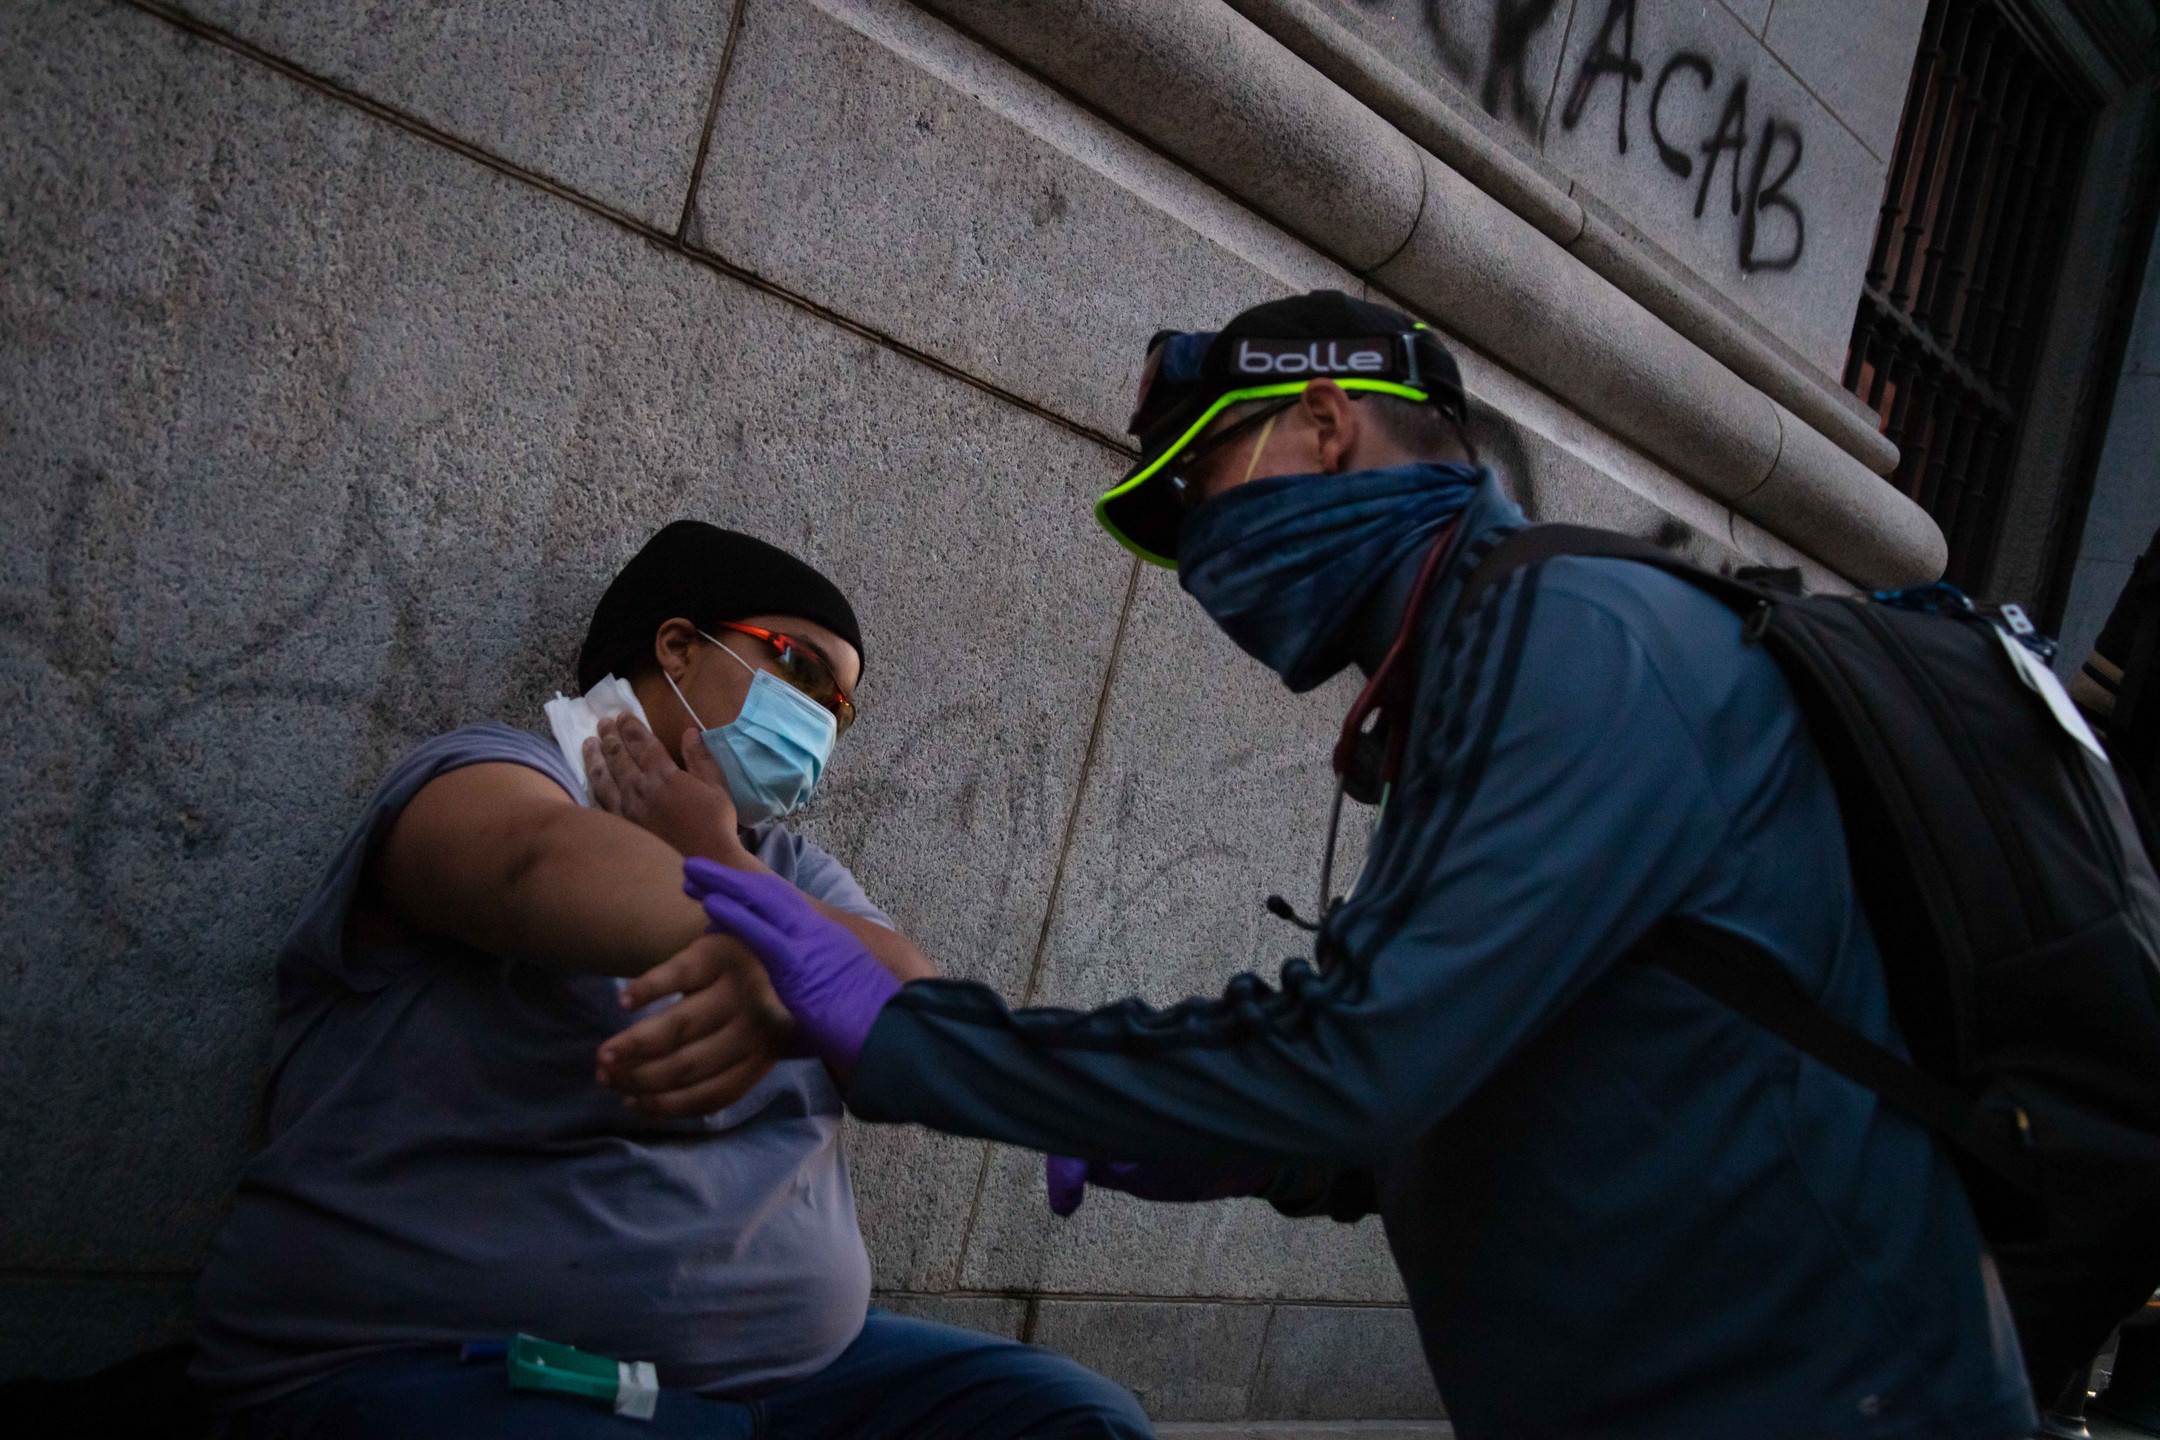 John Lucas, a volunteer medic, treats a protester who was burned by a flash grenade.